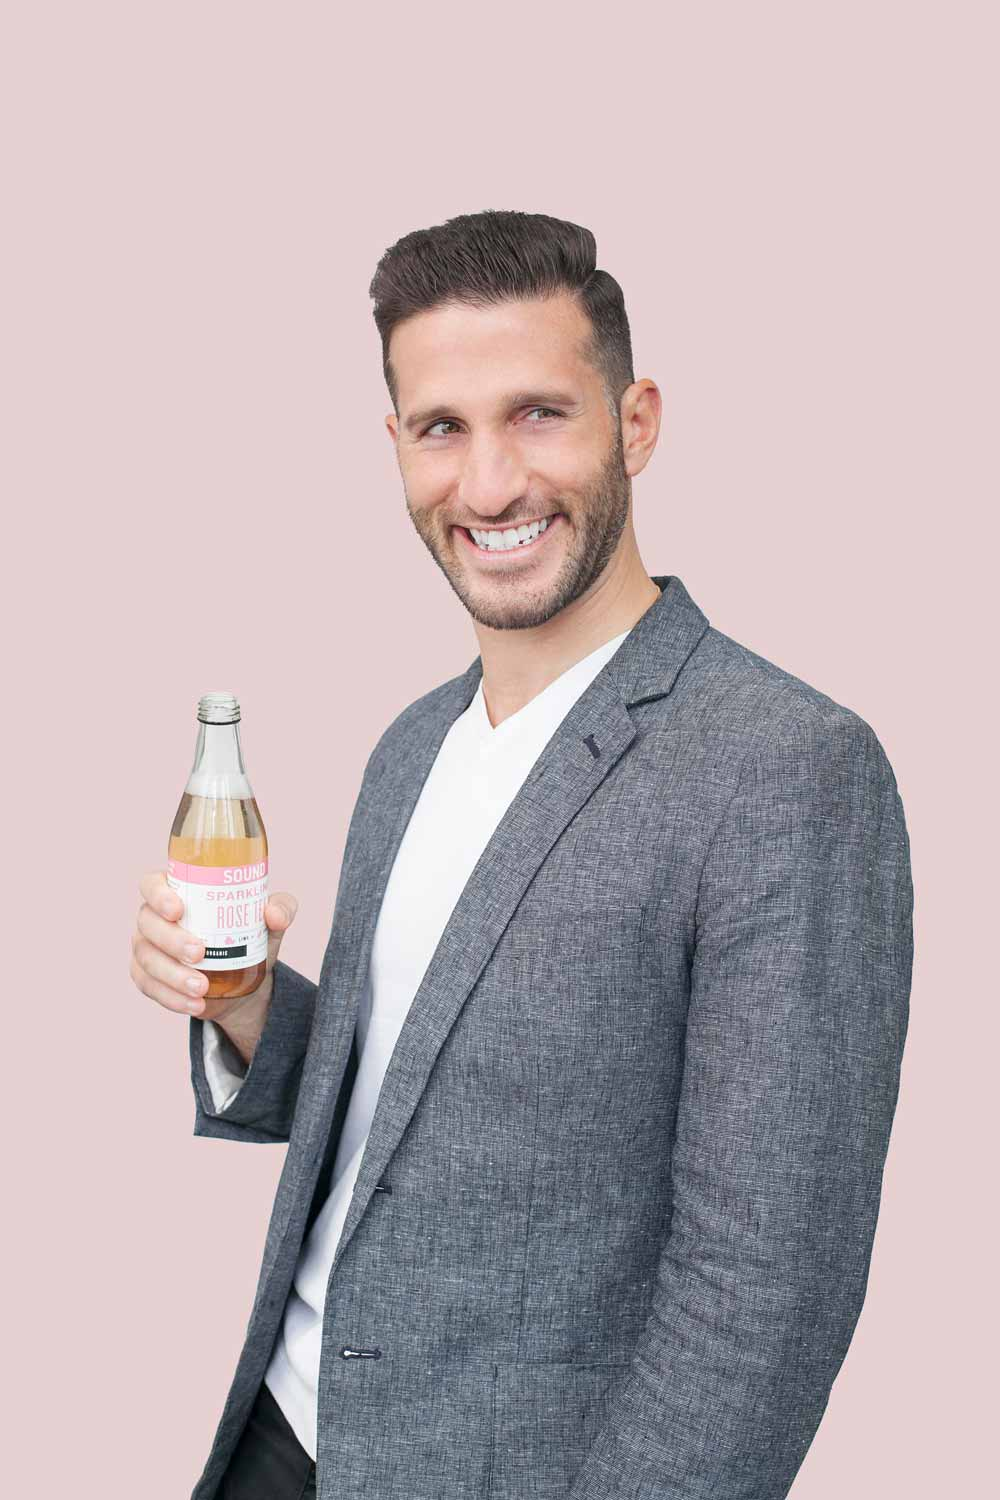 SOUND Sparkling Tea co-founder Salim Najjar smiling next to his product [Unioncrate]